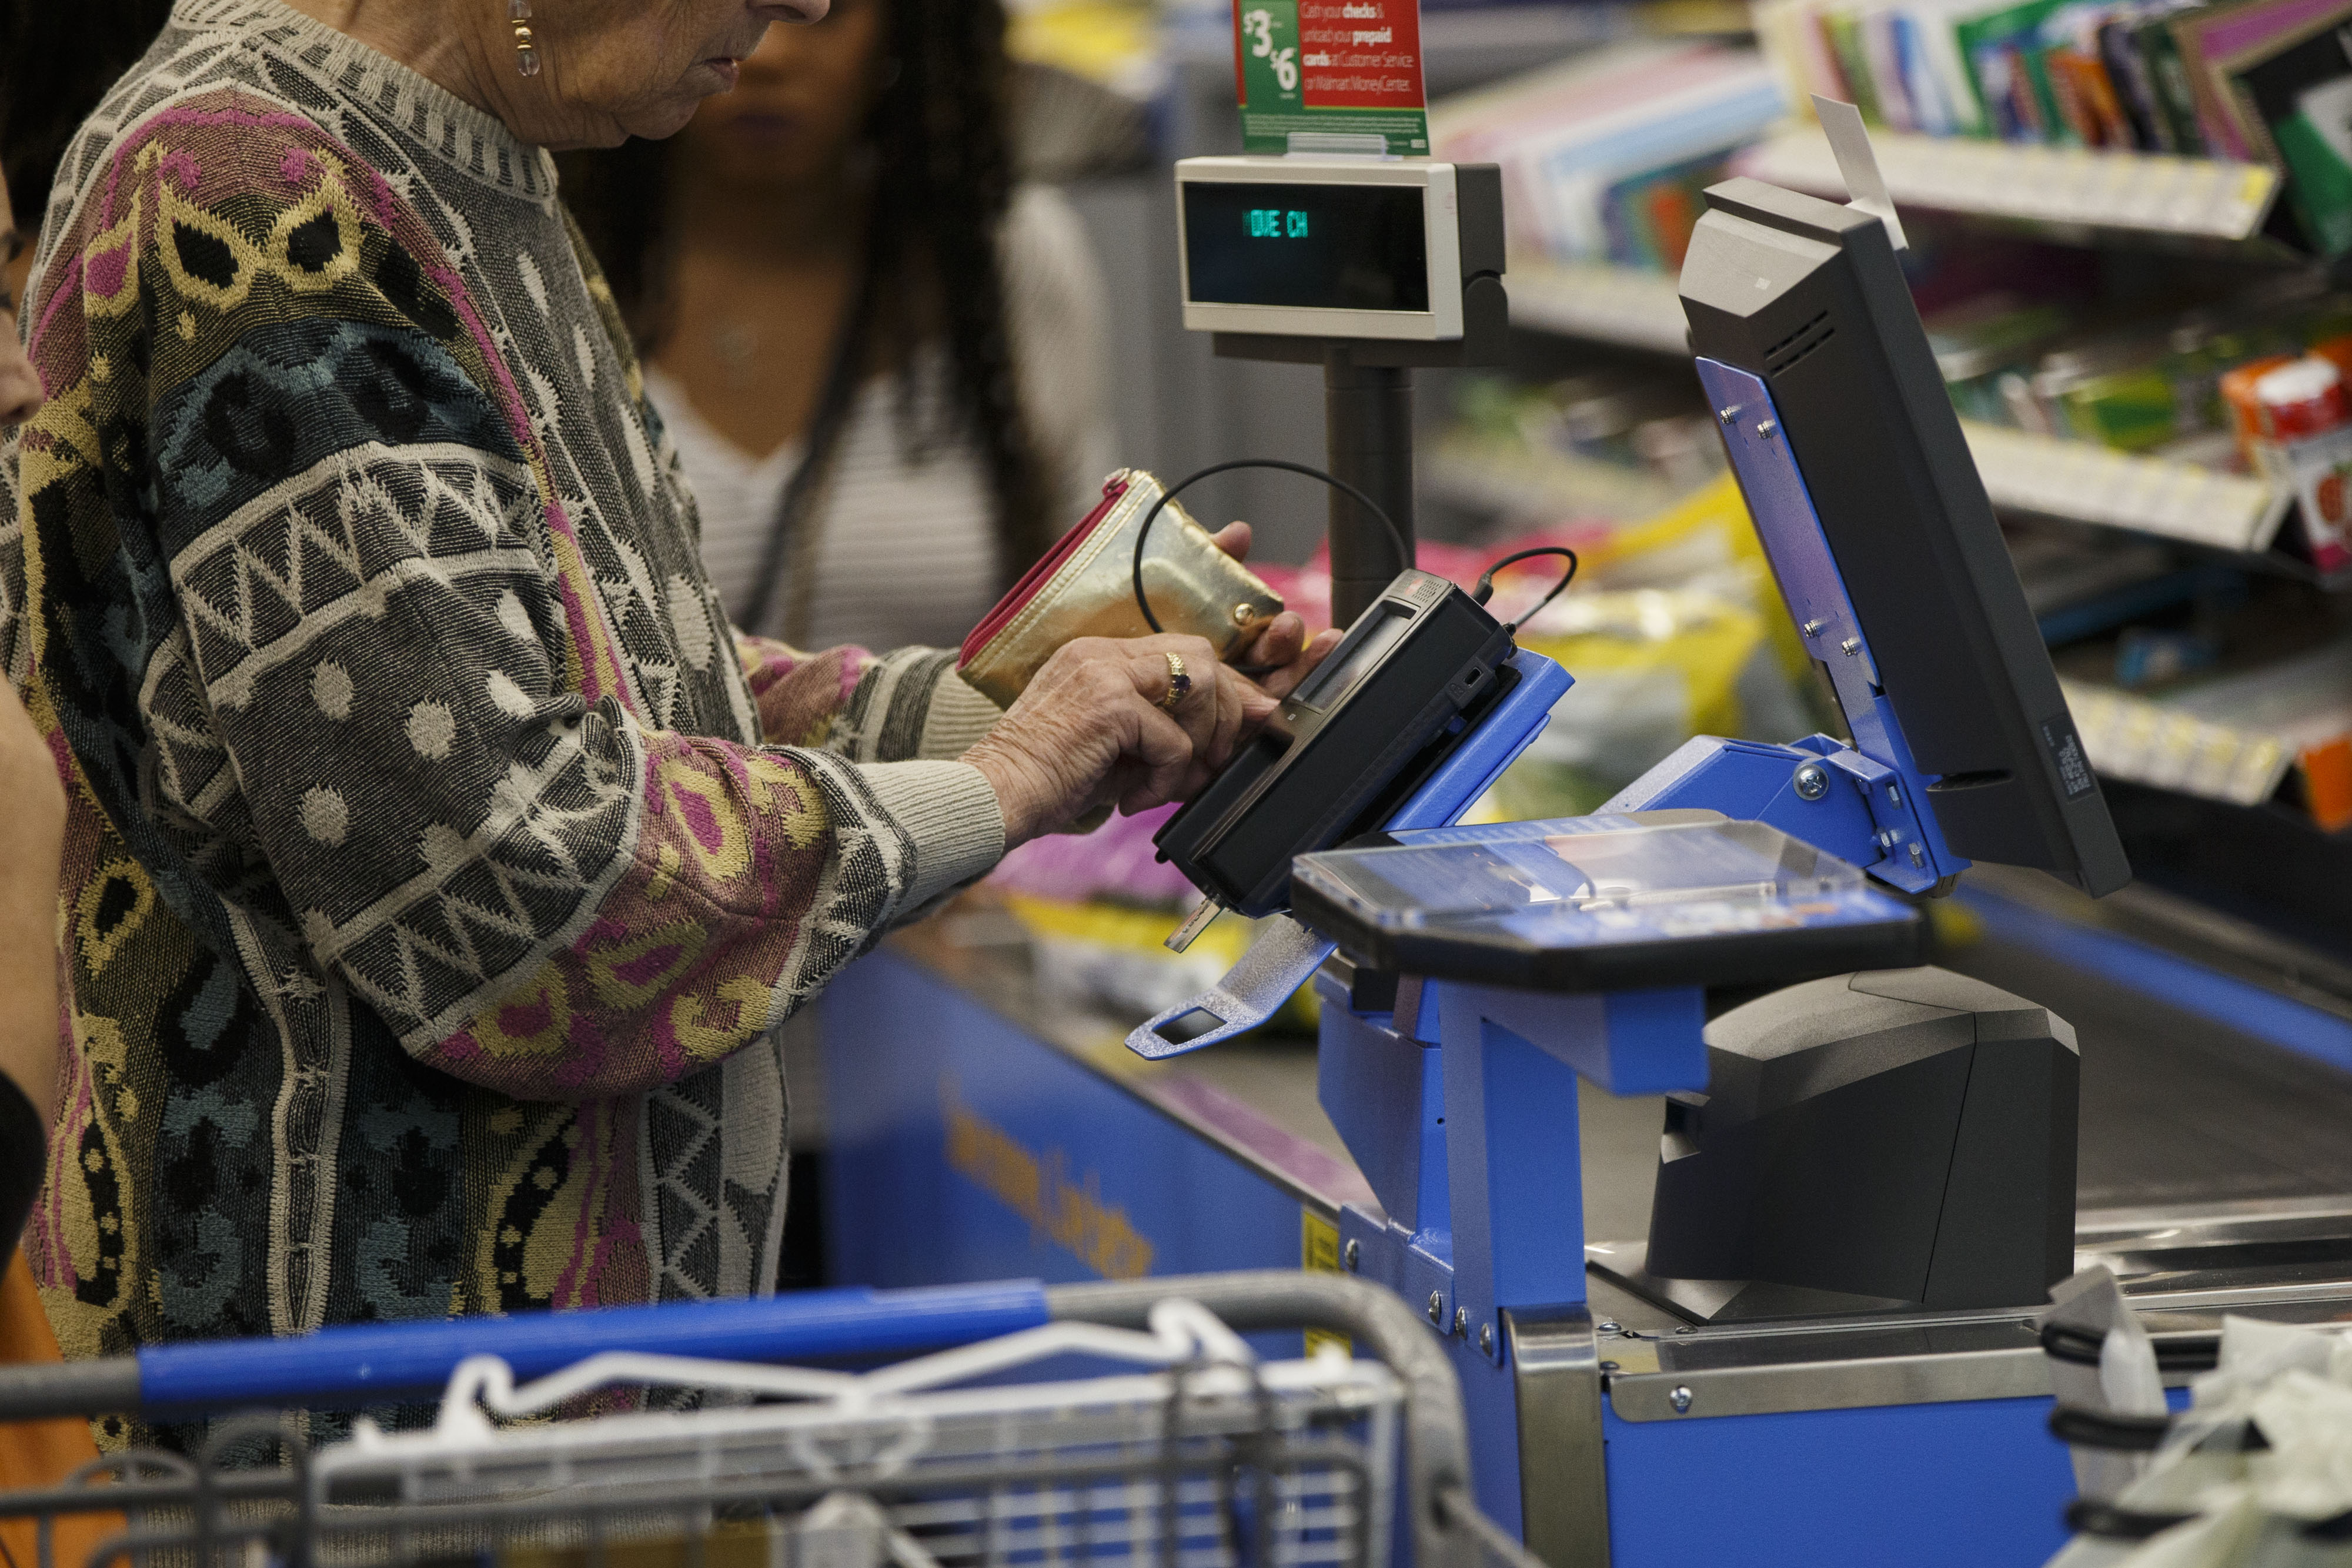 A customer uses a chip credit card terminal at a Wal-Mart Stores Inc. location in Burbank, California on Nov. 22, 2016.